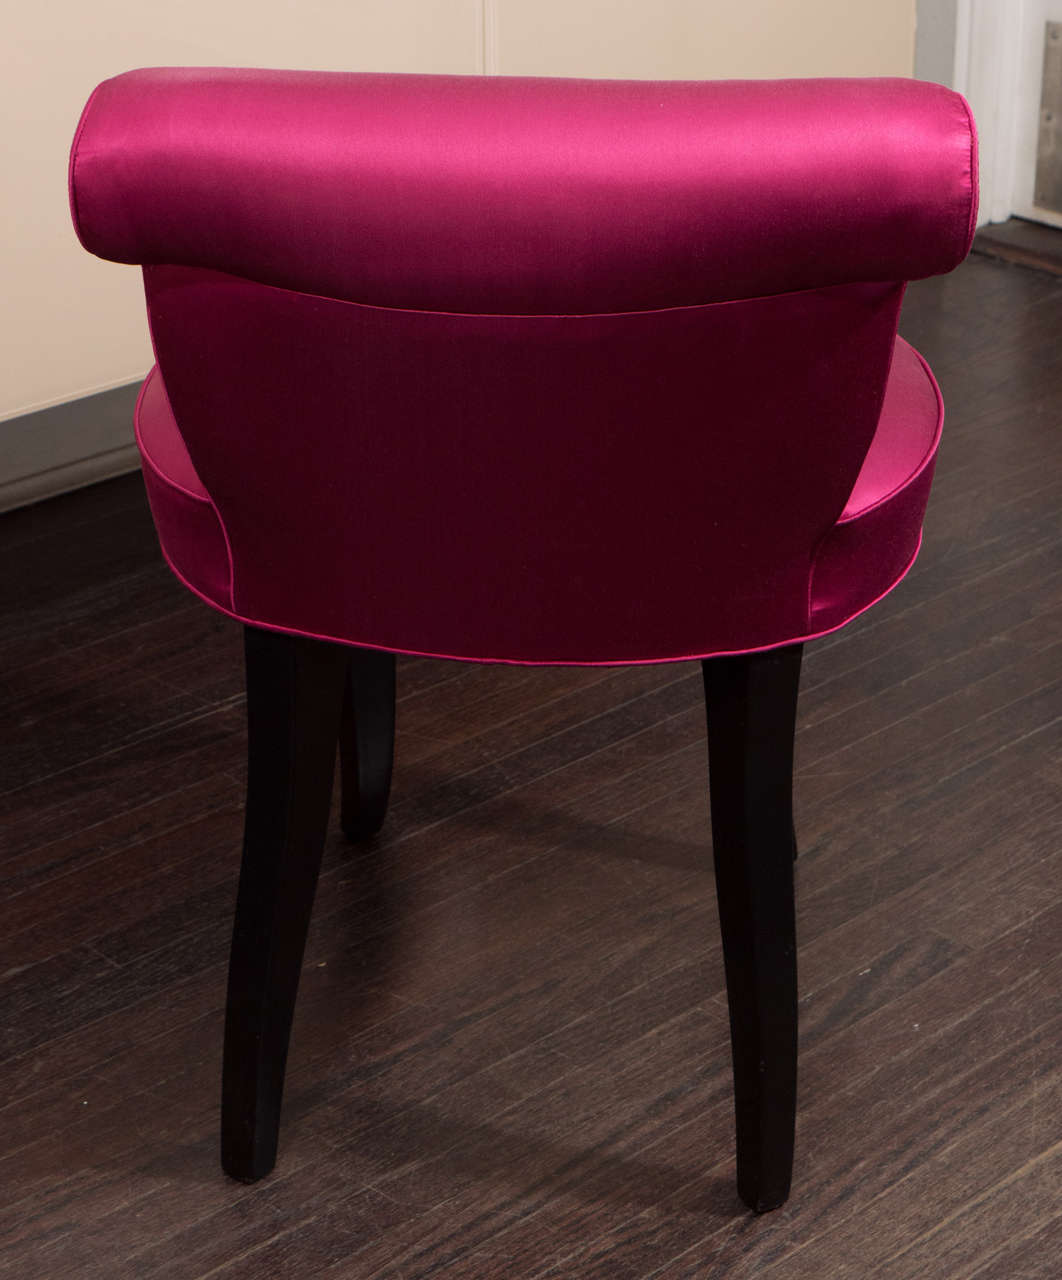 pink vanity chair staples desks and chairs vintage 1940s french stool in hot satin